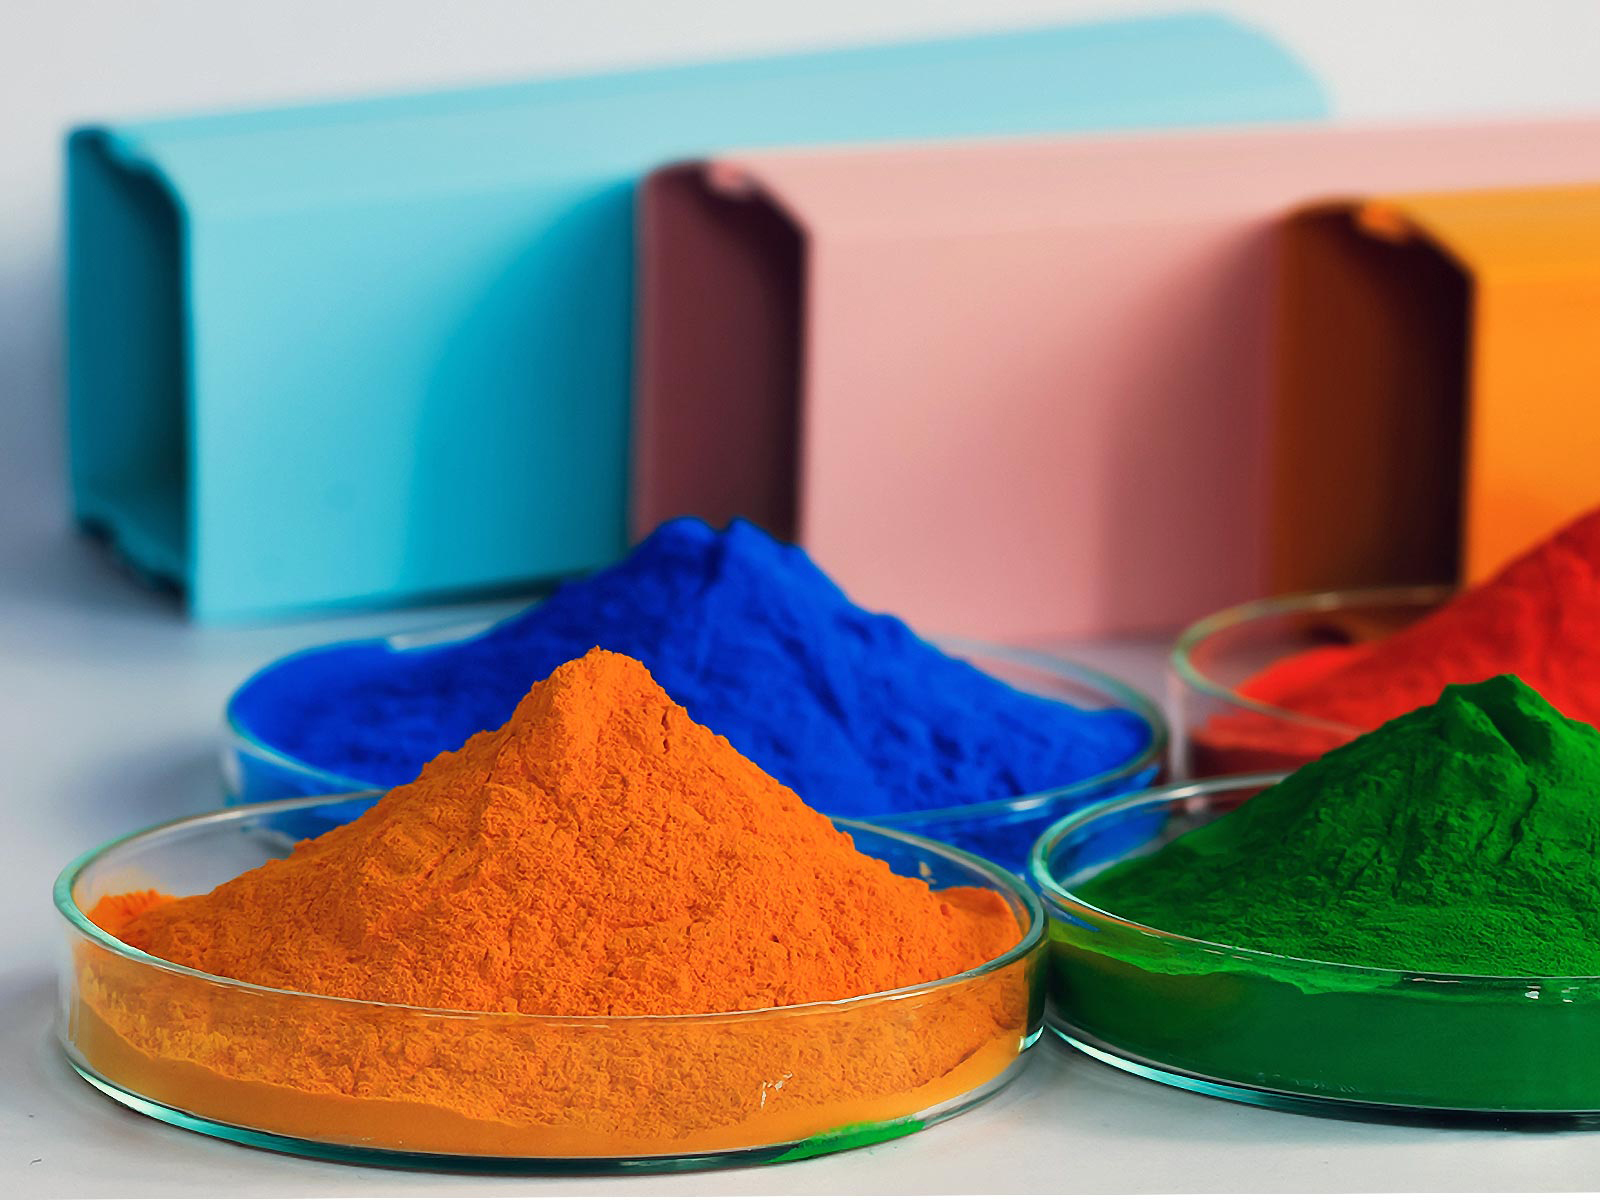 Application versatility and the green building trend are two key factors that are driving the growth of the global powder coatings industry. Image: www.tlcmetalworks.com